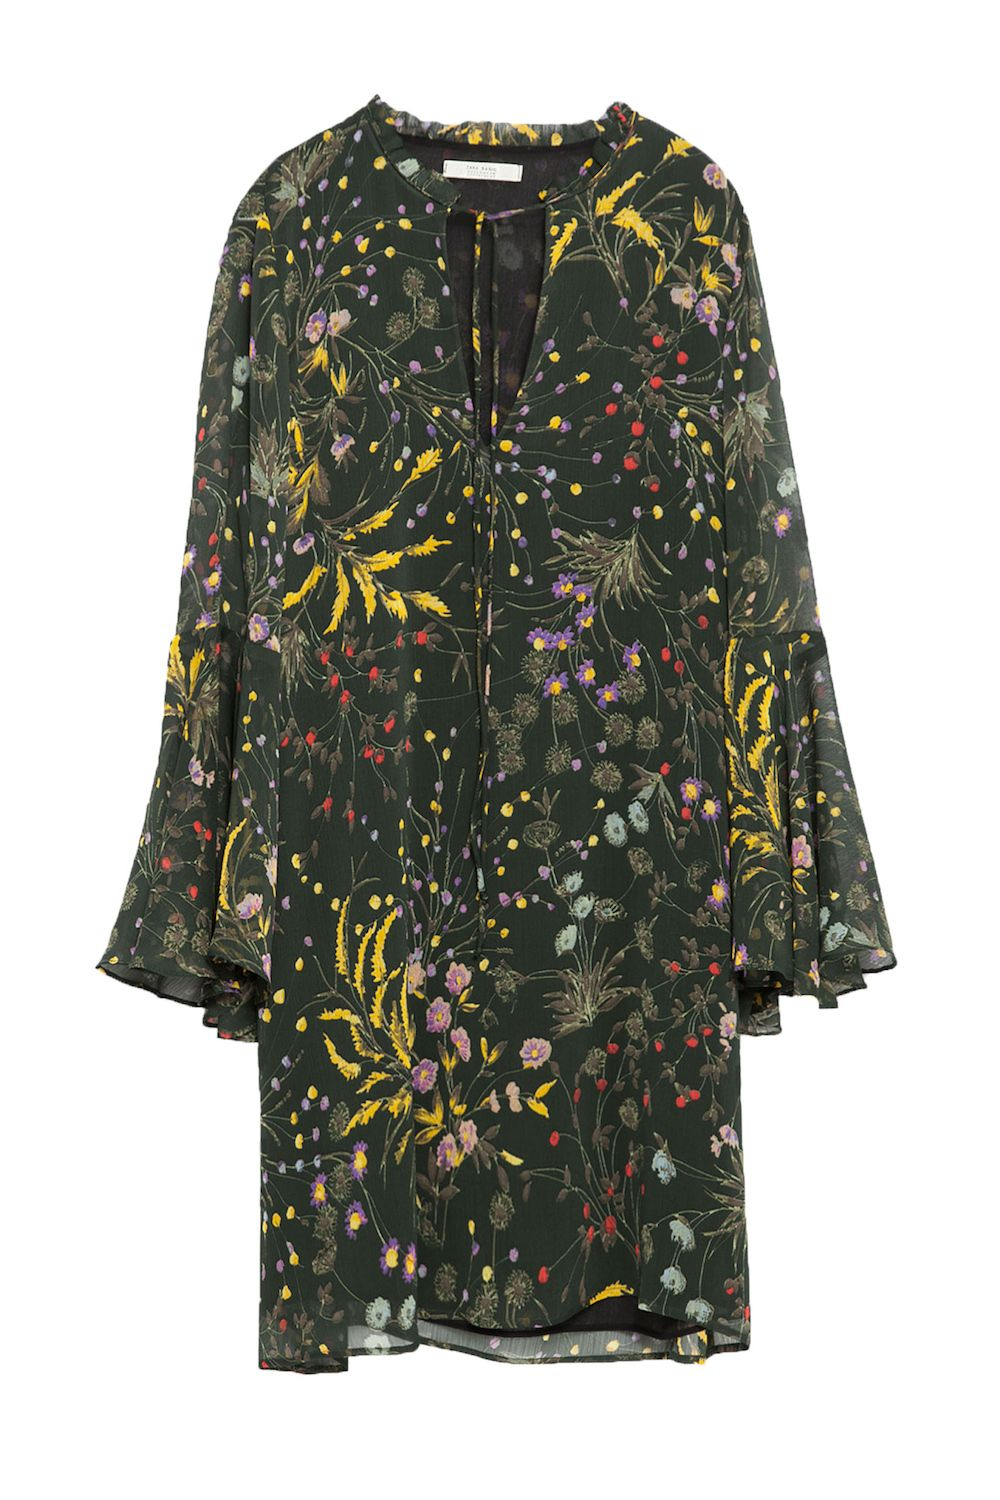 "<p>A billowy silhouette and a dark, floral print are a killer combination for fall.</p><p>Zara Floral Print Dress, $69.90&#x3B; <a href=""http://www.zara.com/us/en/woman/dresses/view-all/floral-print-dress-c733885p2995539.html"" target=""_blank"">zara.com</a>.</p>"